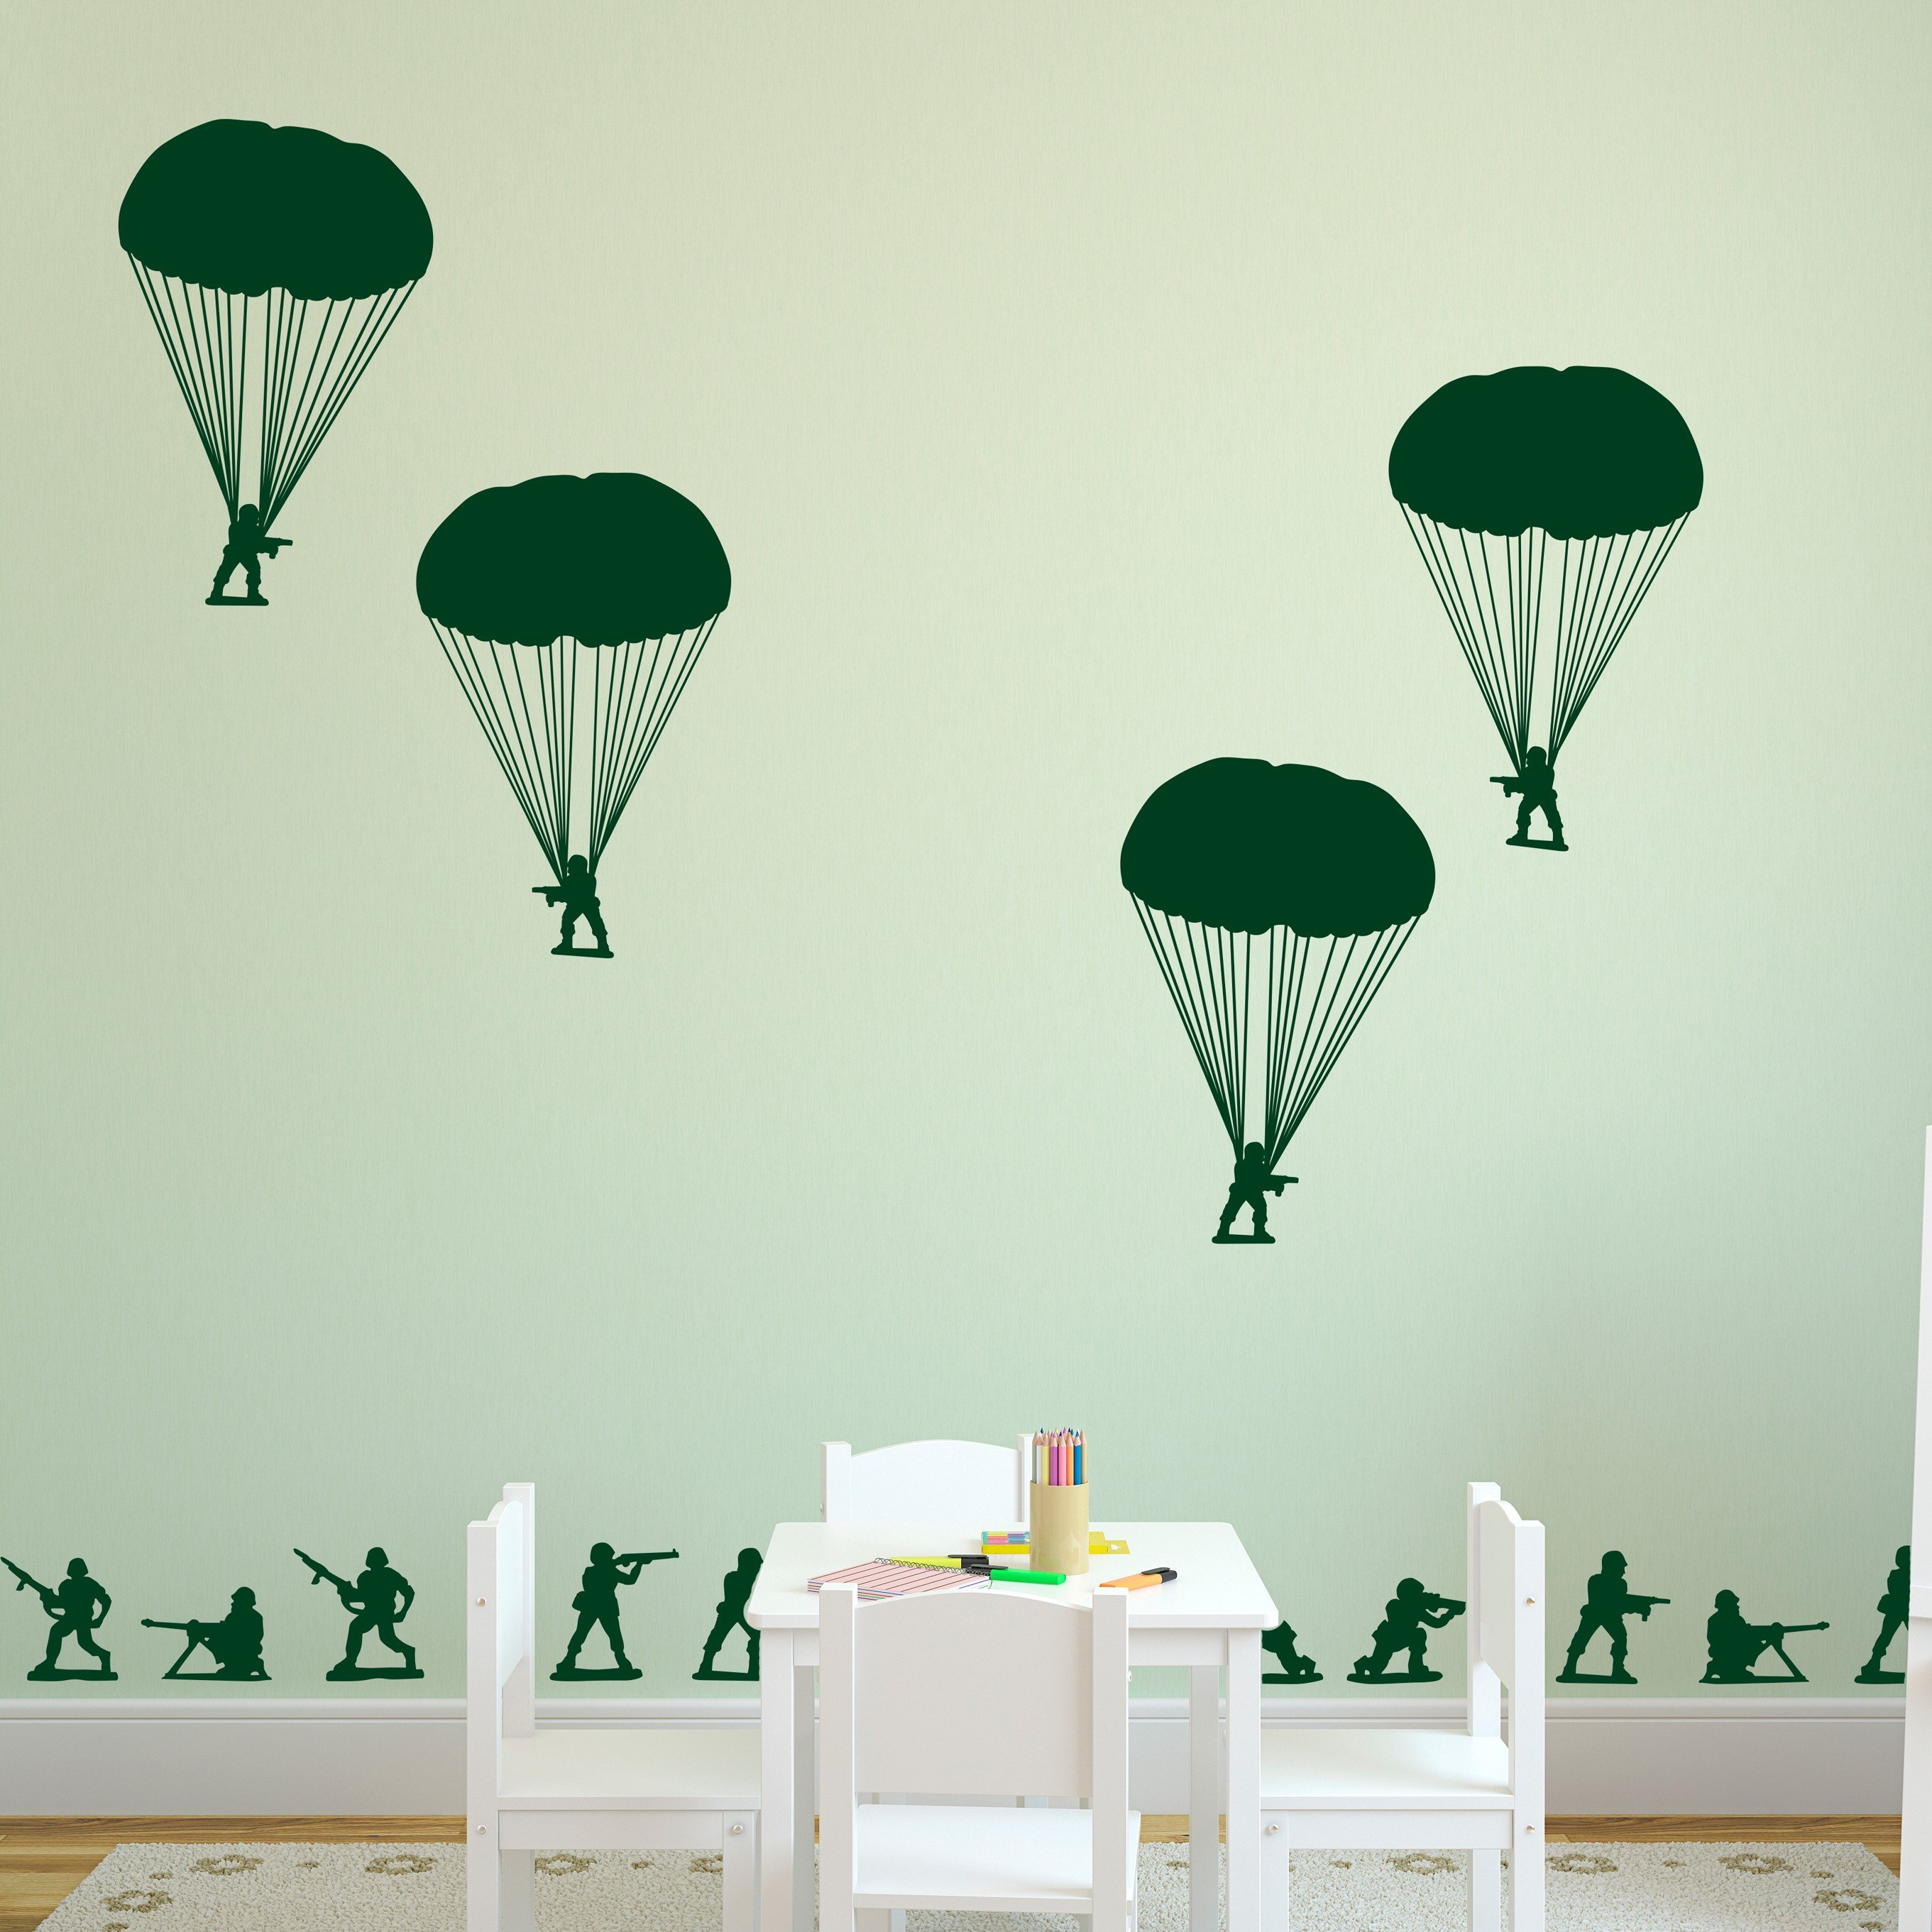 Pics photos abstract green wallpaper network - Green Army Men Toy Military Toys Soldier War Wallpaper